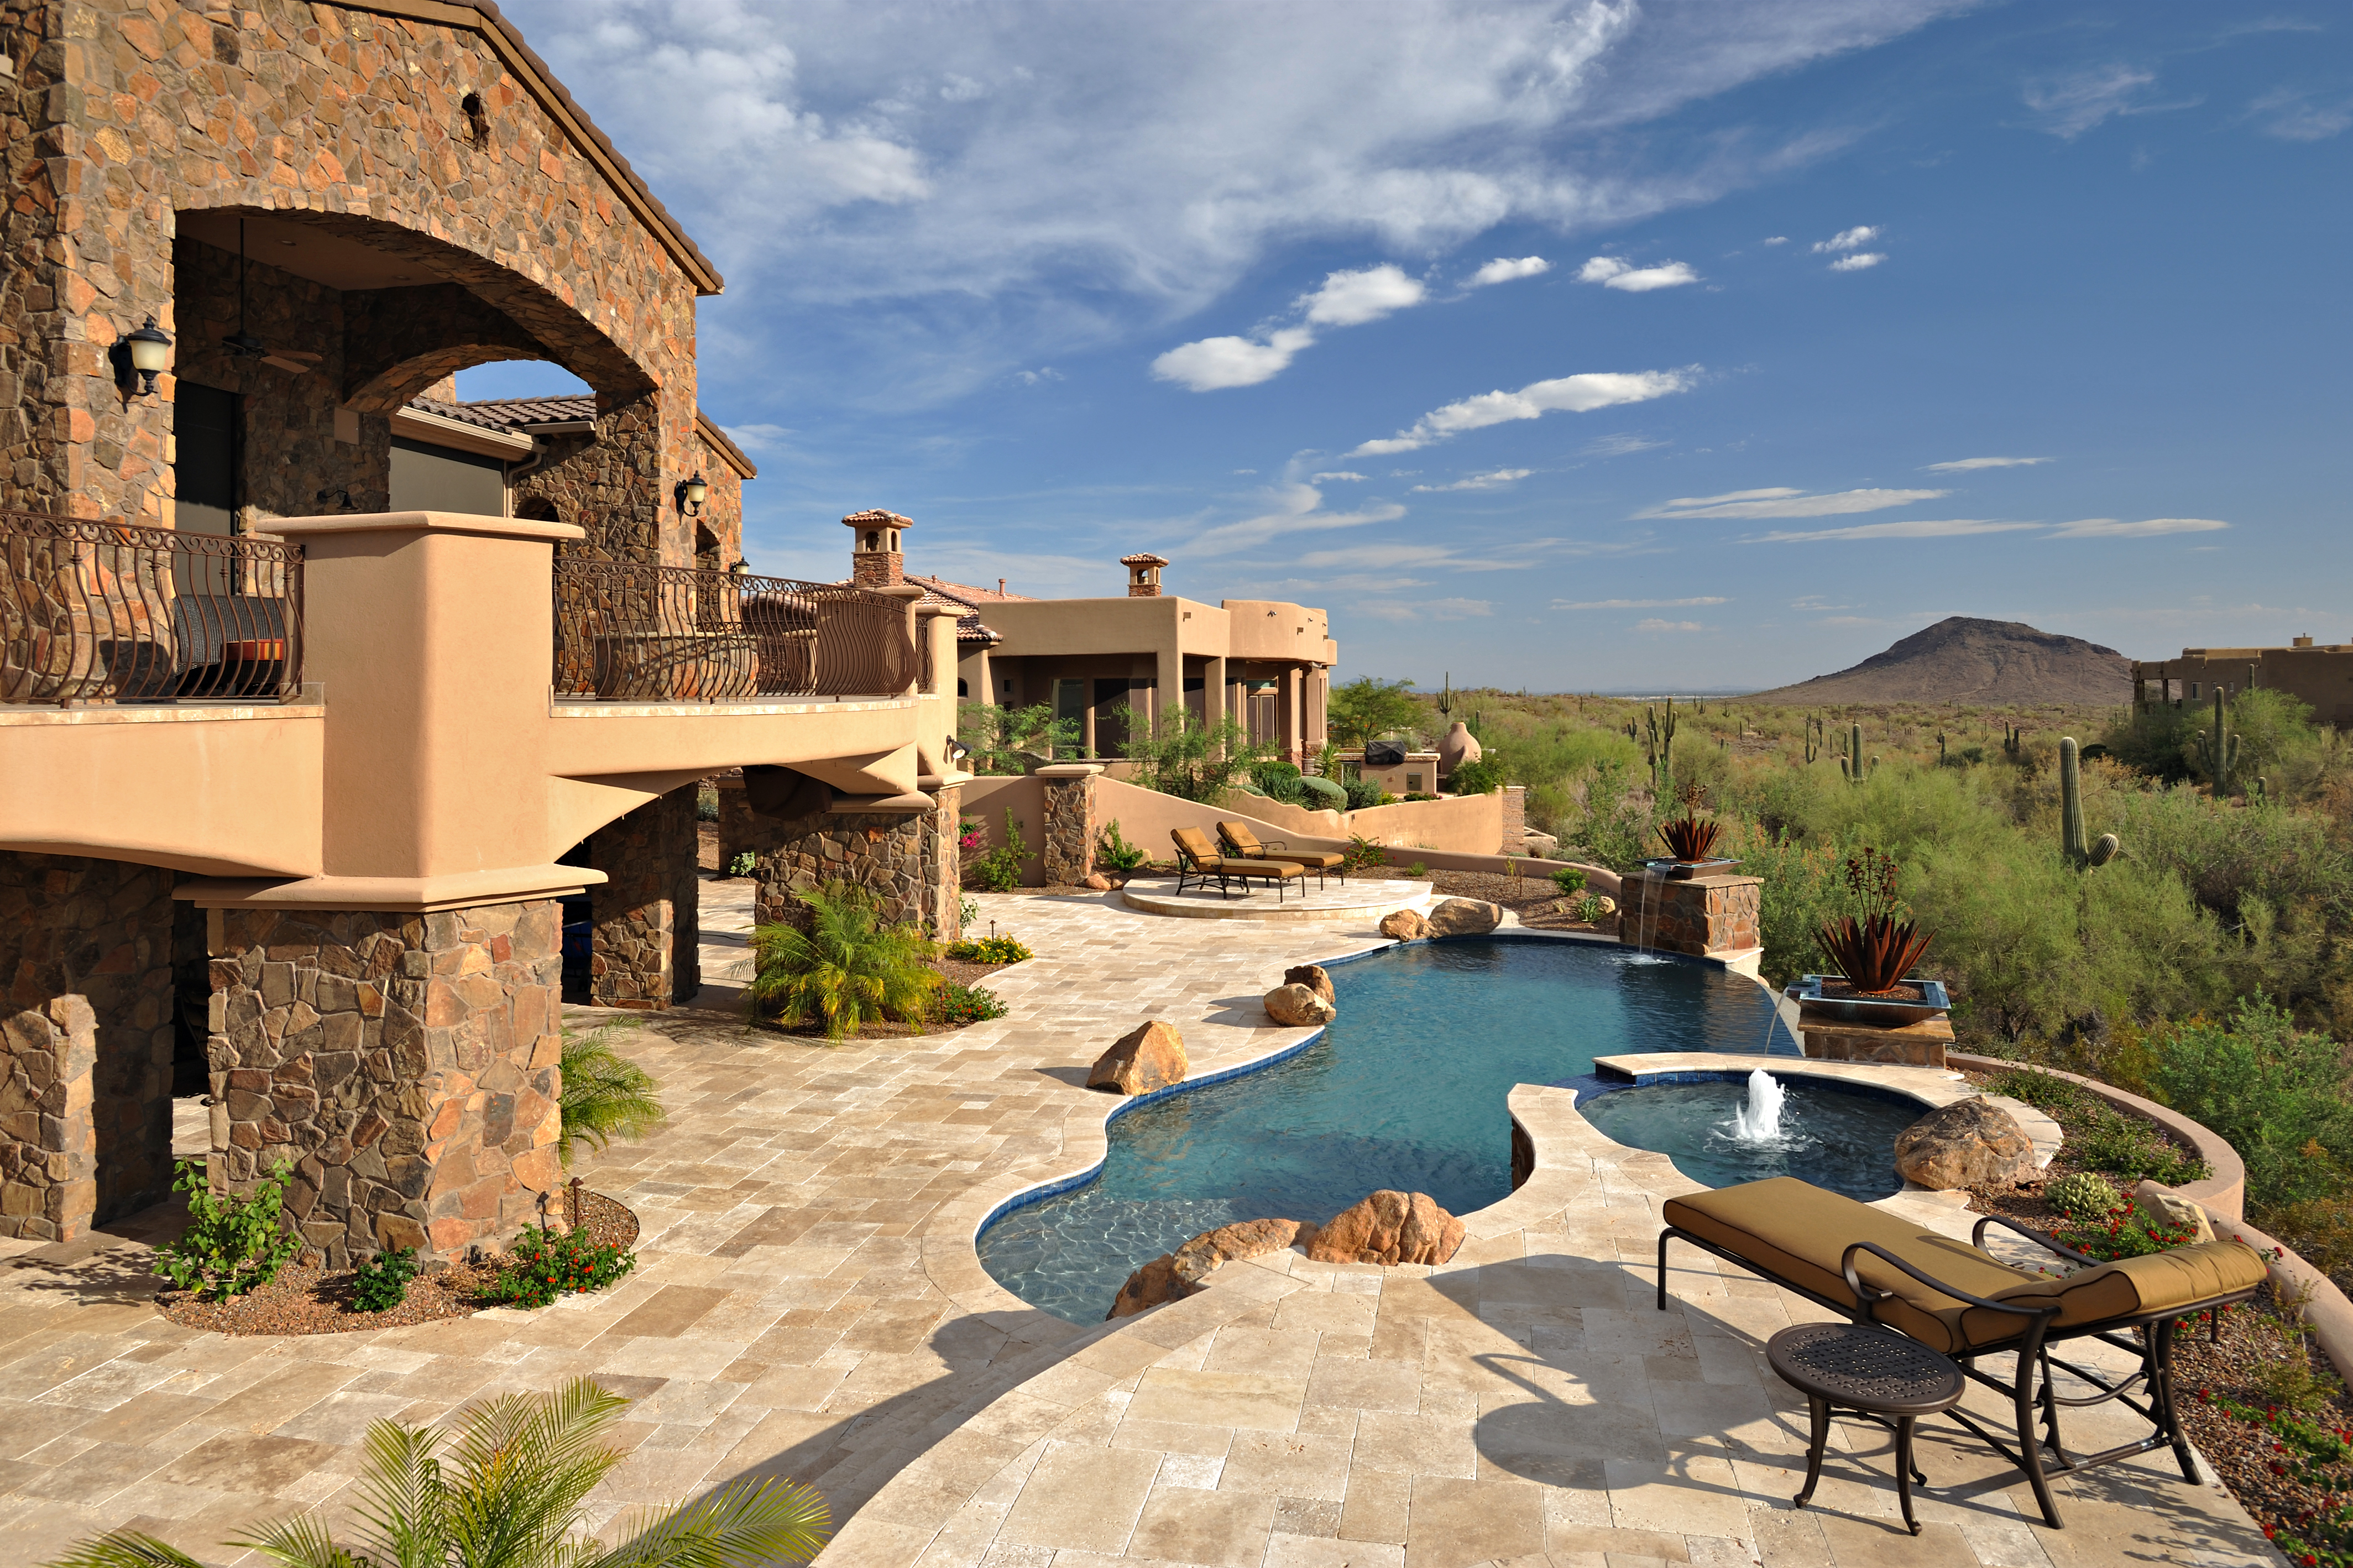 California pools landscape chandler az 85226 angies for Garden pool in arizona